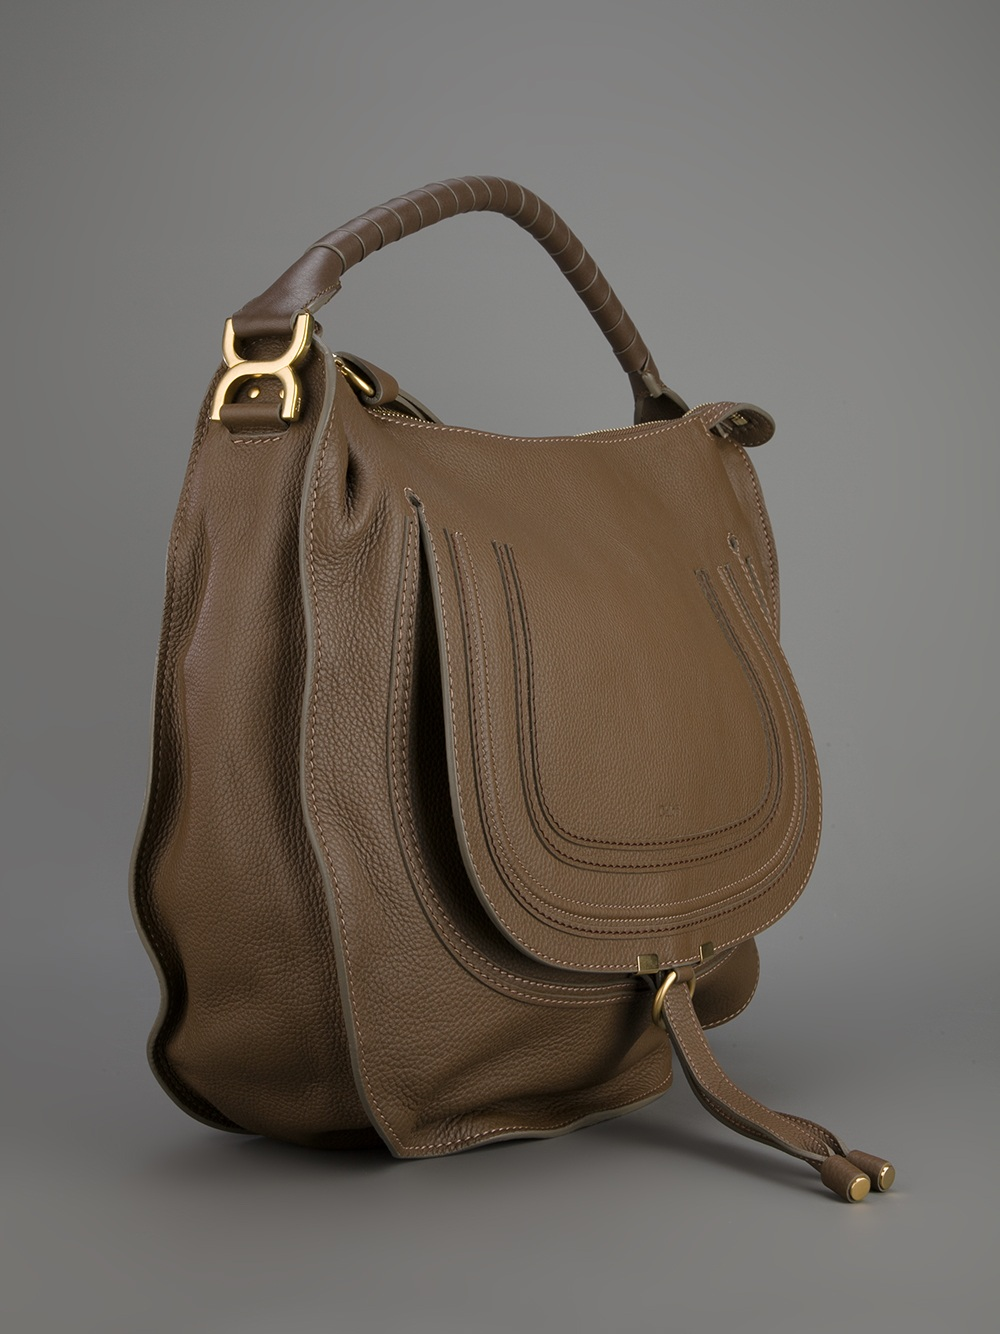 Chlo¨¦ Marcie Hobo Large Bag in Brown | Lyst